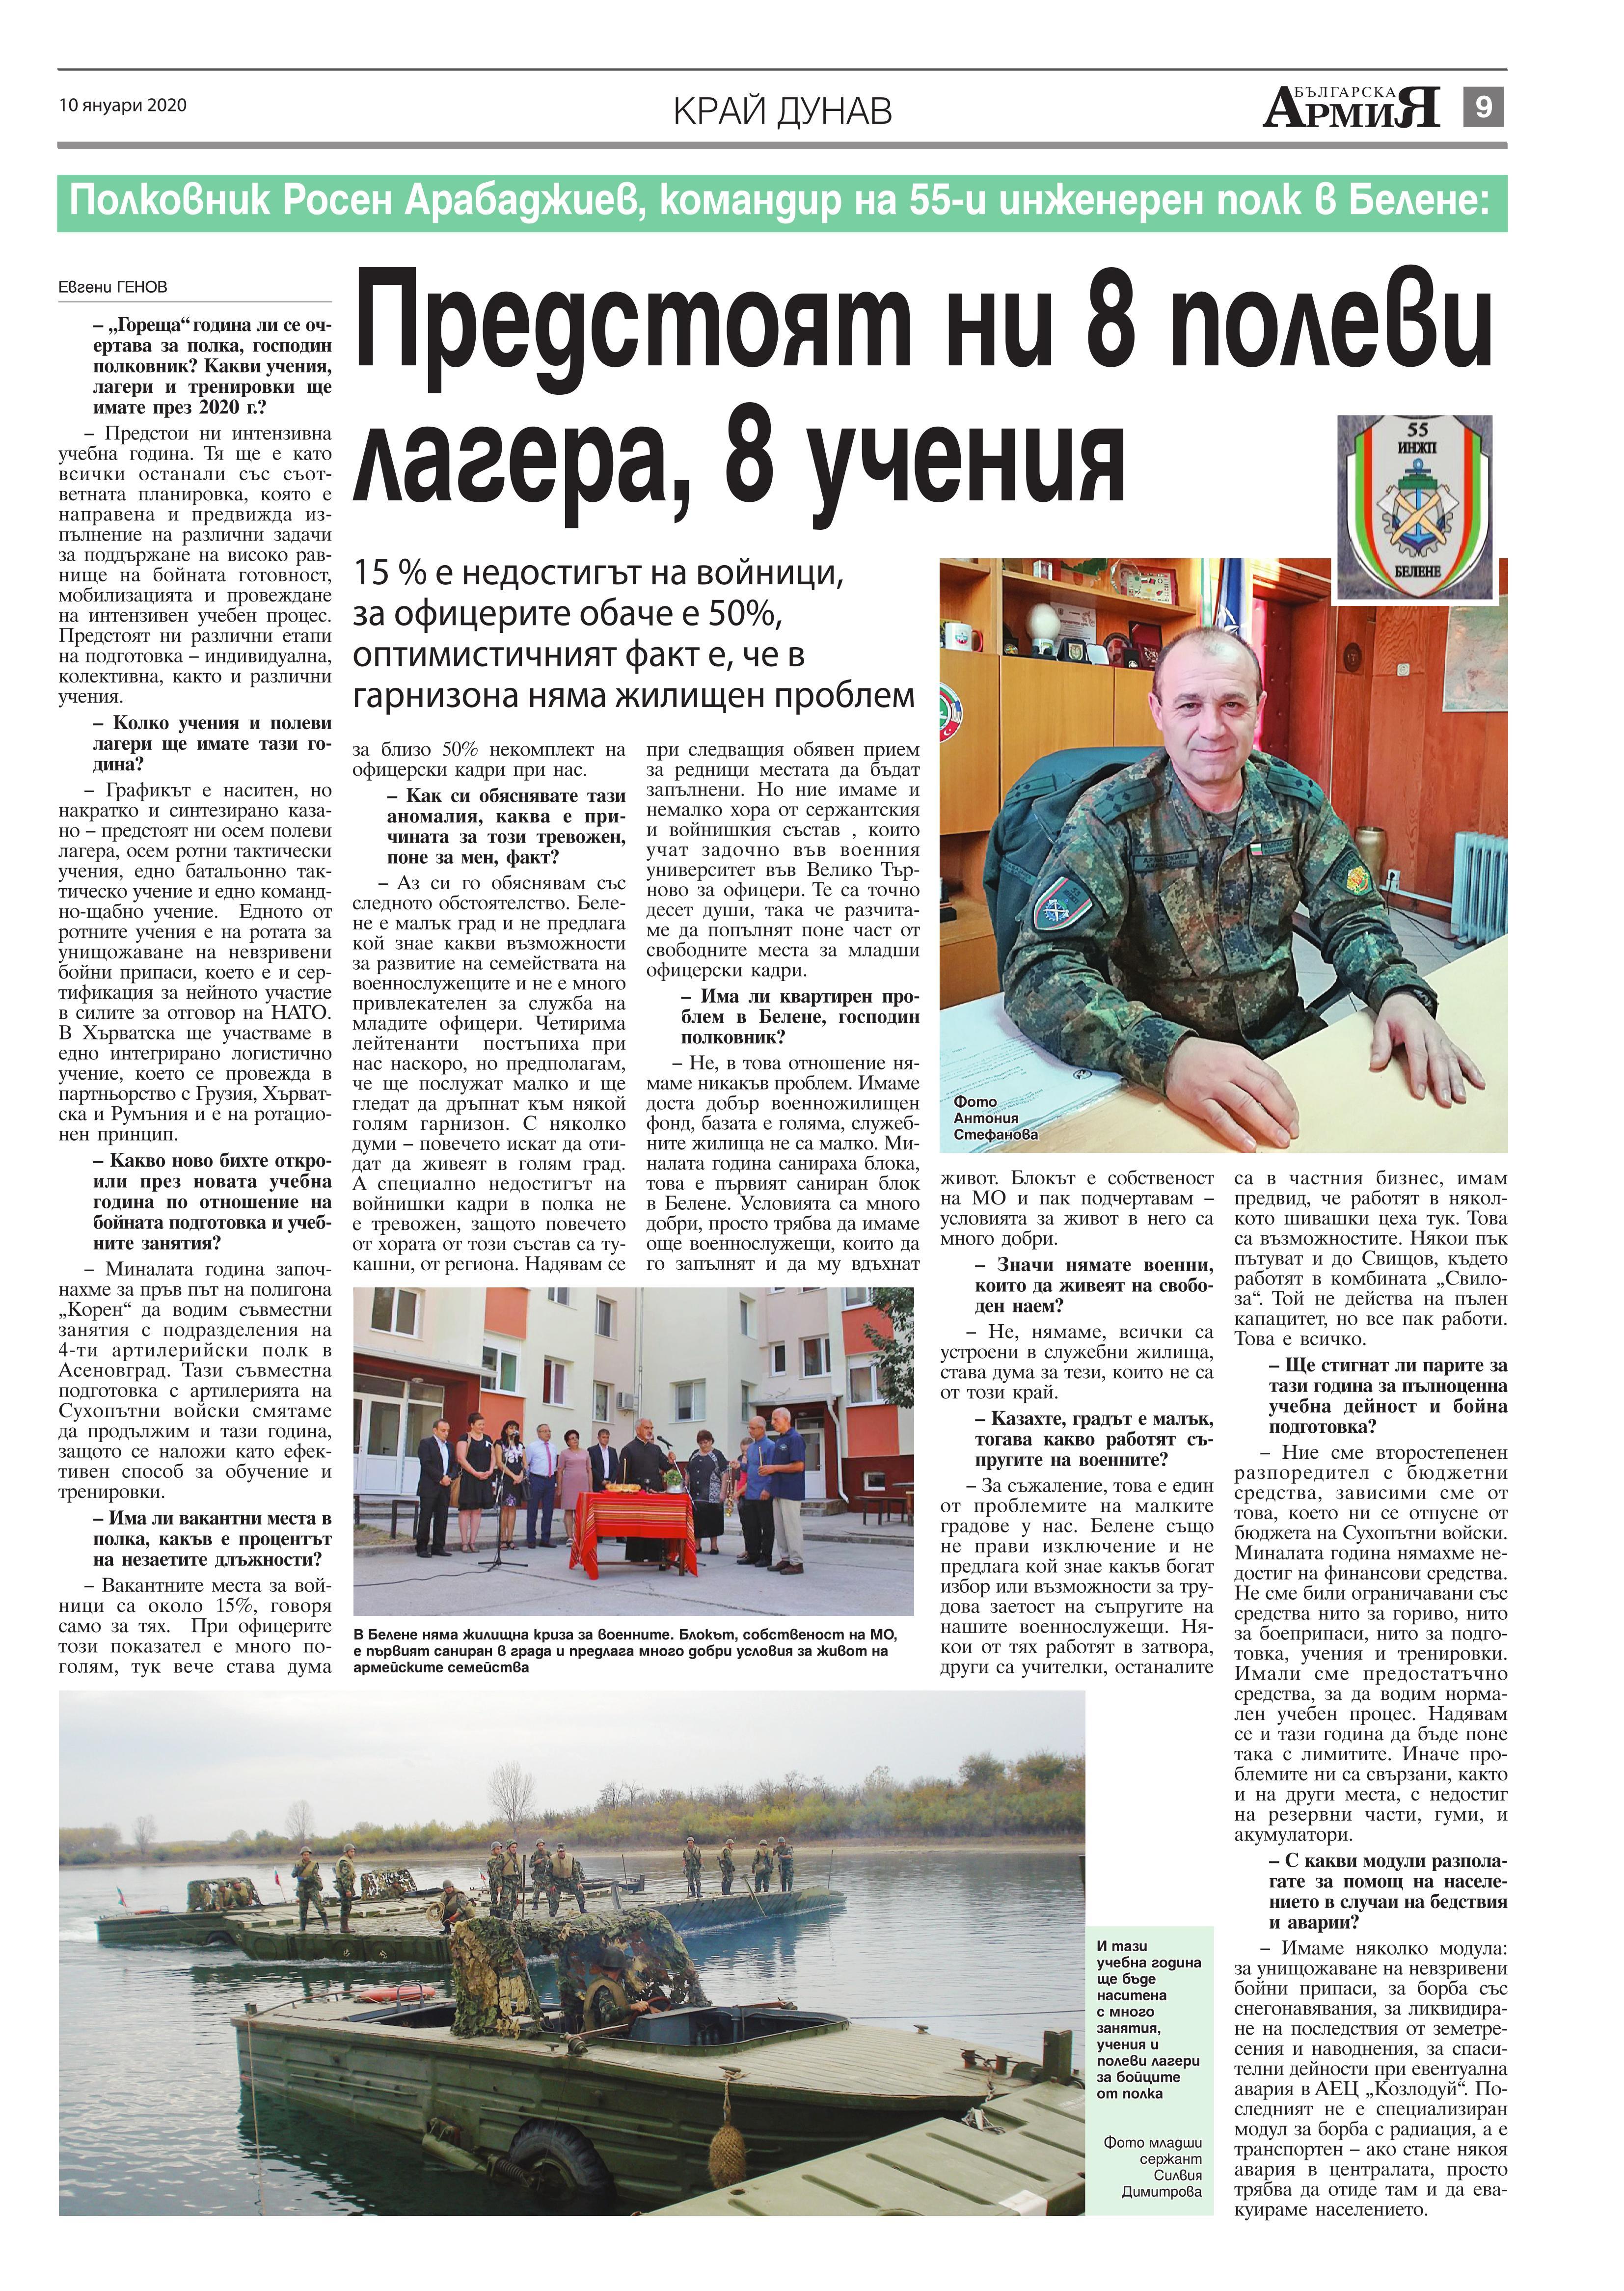 https://www.armymedia.bg/wp-content/uploads/2015/06/09.page1_-120.jpg